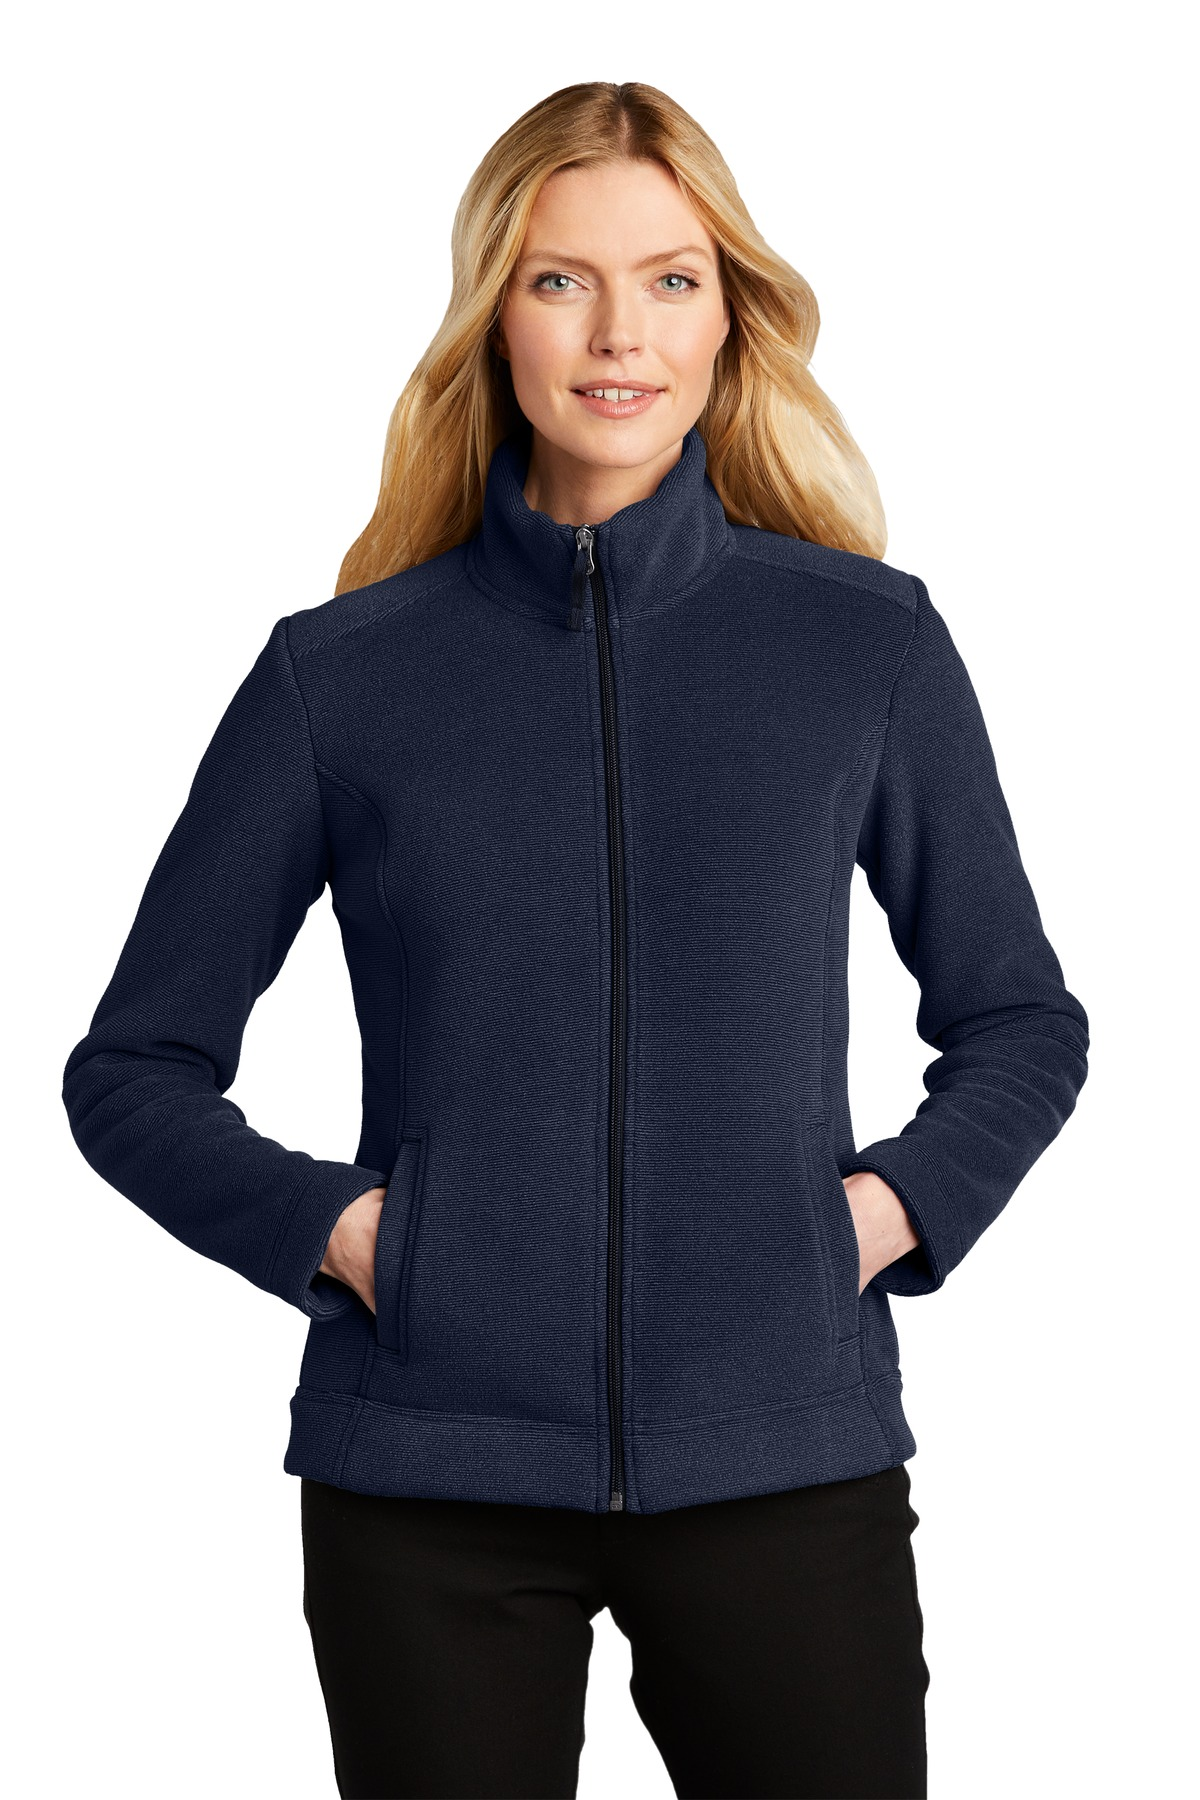 Port Authority  ®  Ladies Ultra Warm Brushed Fleece Jacket. L211 - Insignia Blue/ River Blue Navy